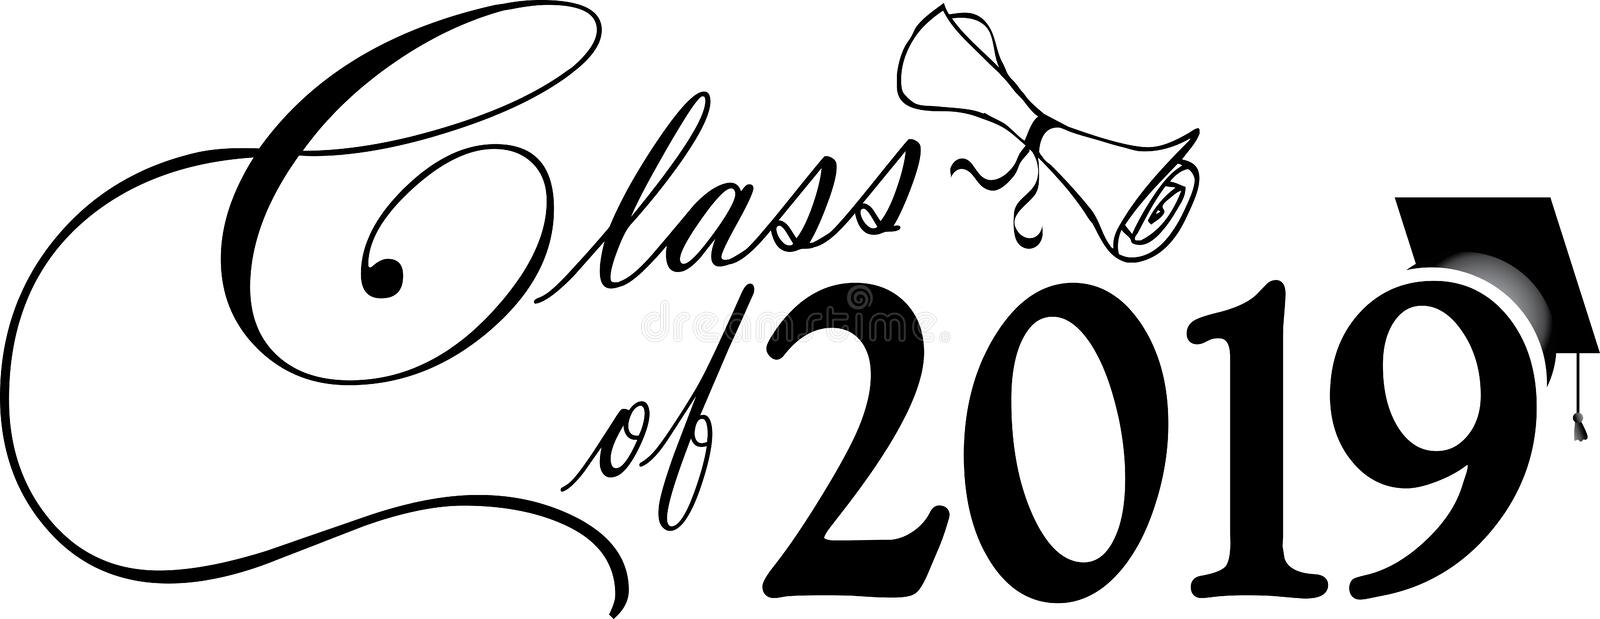 Class of 2019 Script with diploma and graduation cap. Class of 2019 Script with diploma and cap in Black and White for graduation stock illustration